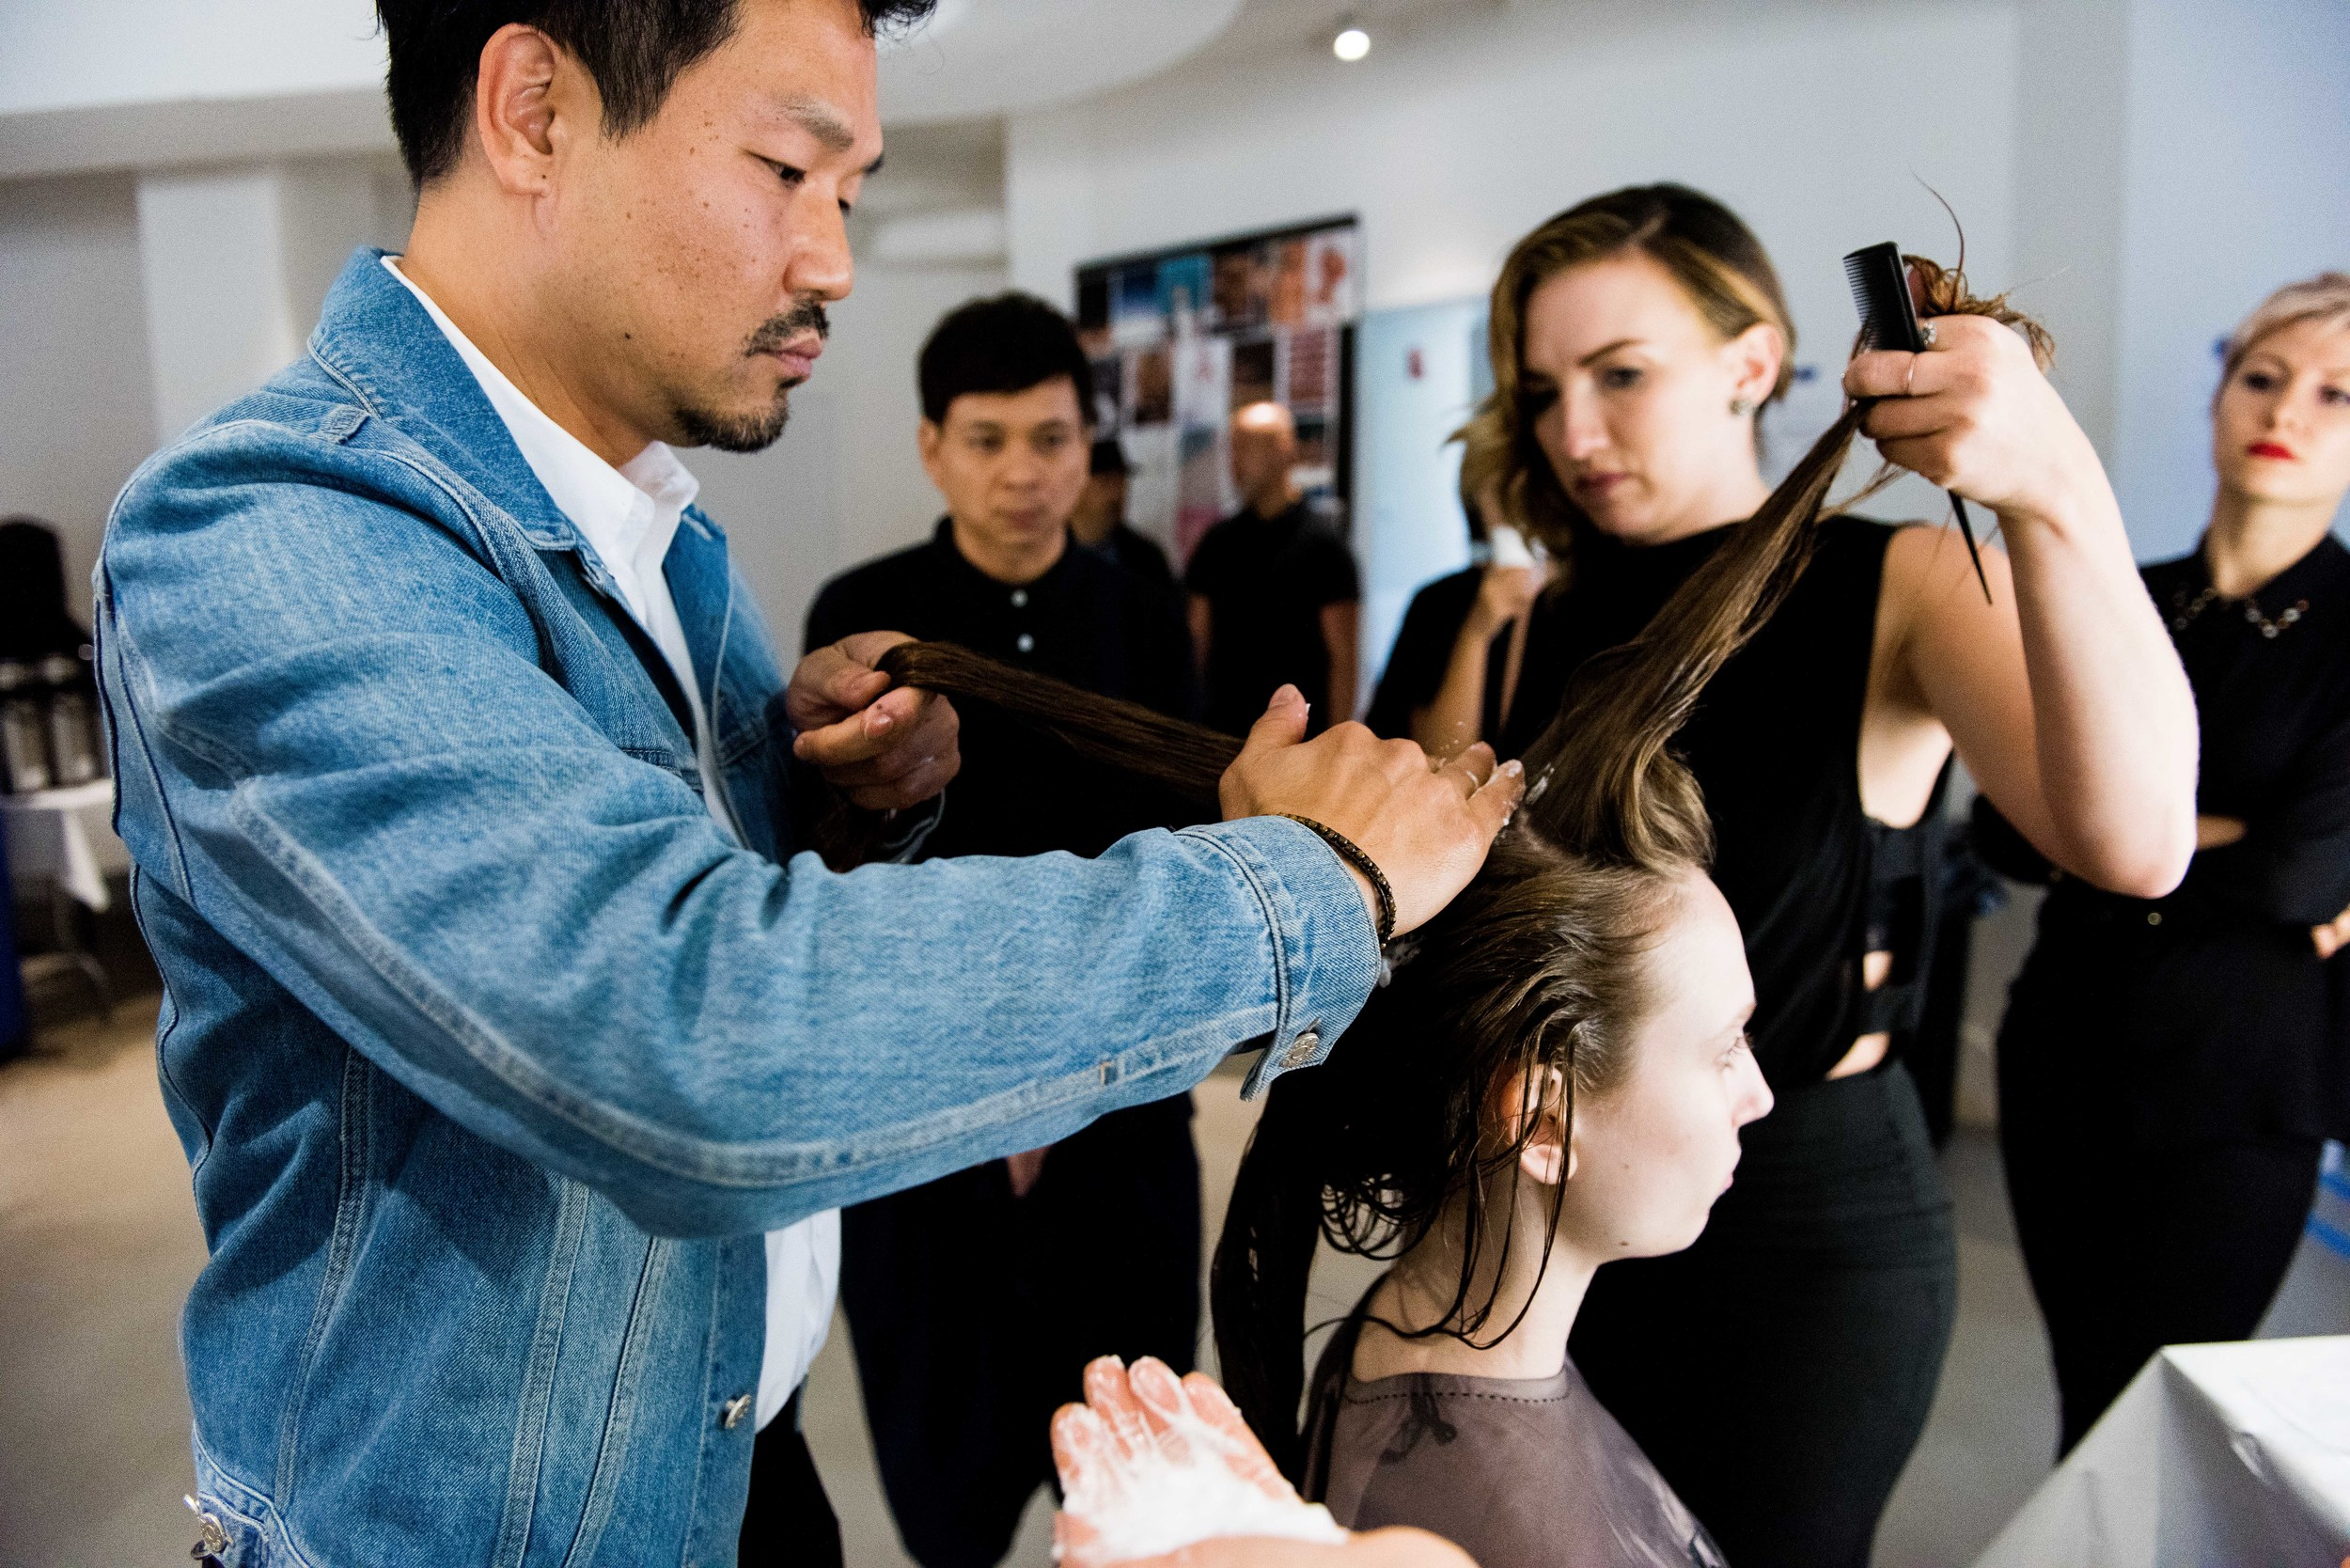 Veronica Beard #NYFW SS16 | Key Hair: Kien Hoang @kienhoang // Photos by: Luis Antonio Ruiz Photography @larufoto | @matteproject for @oribe